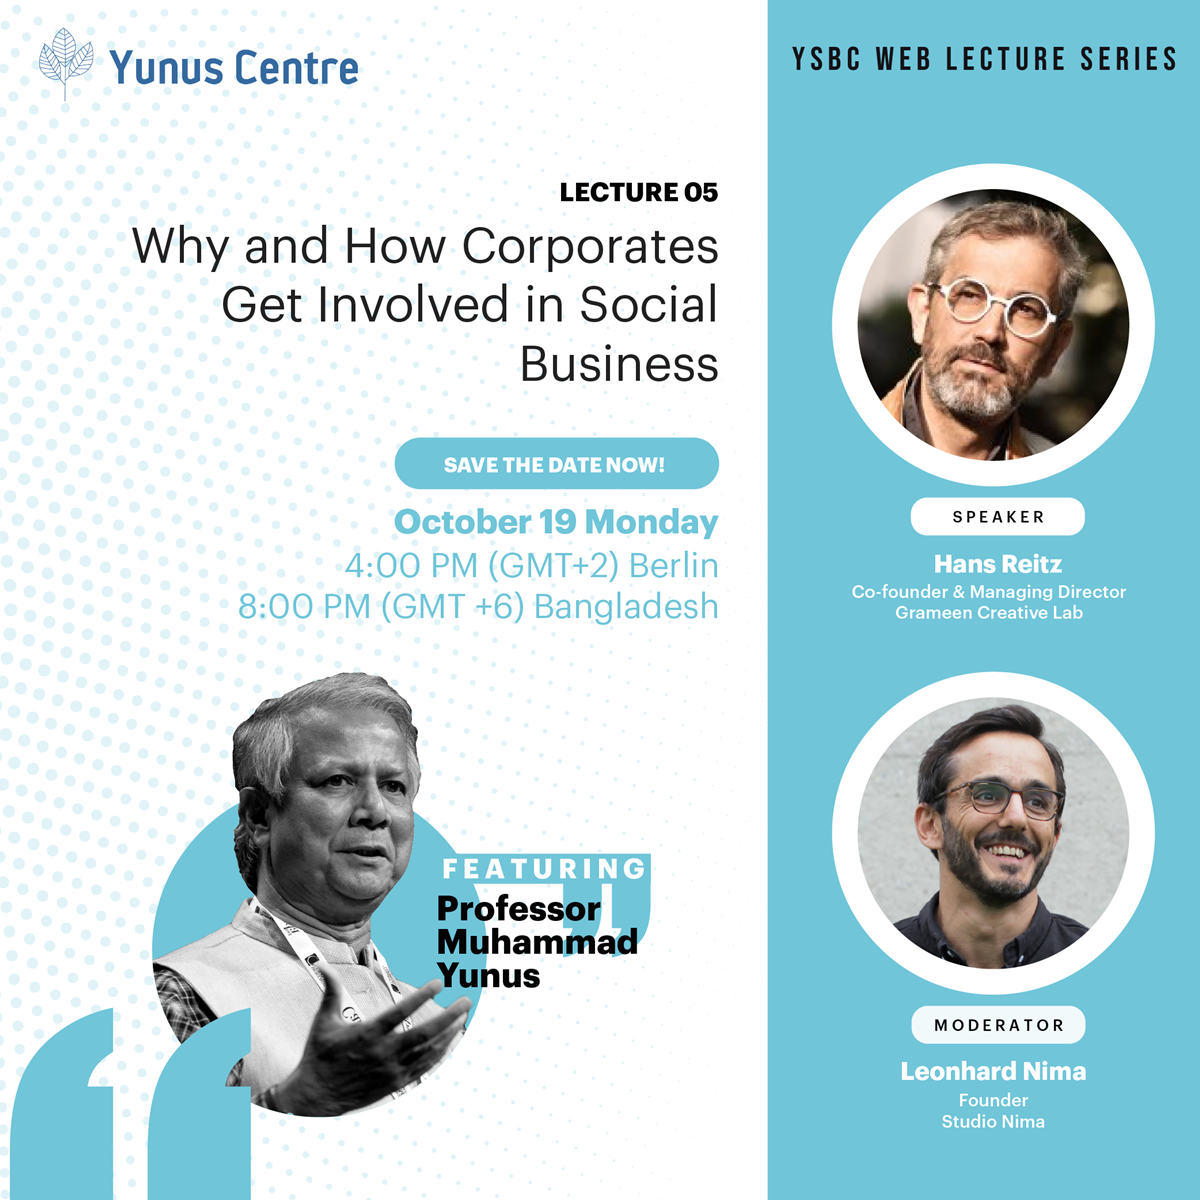 YSBC Web Lecture Series - Lecture 05 : Why and How Corporates Get Involved in Social Business.